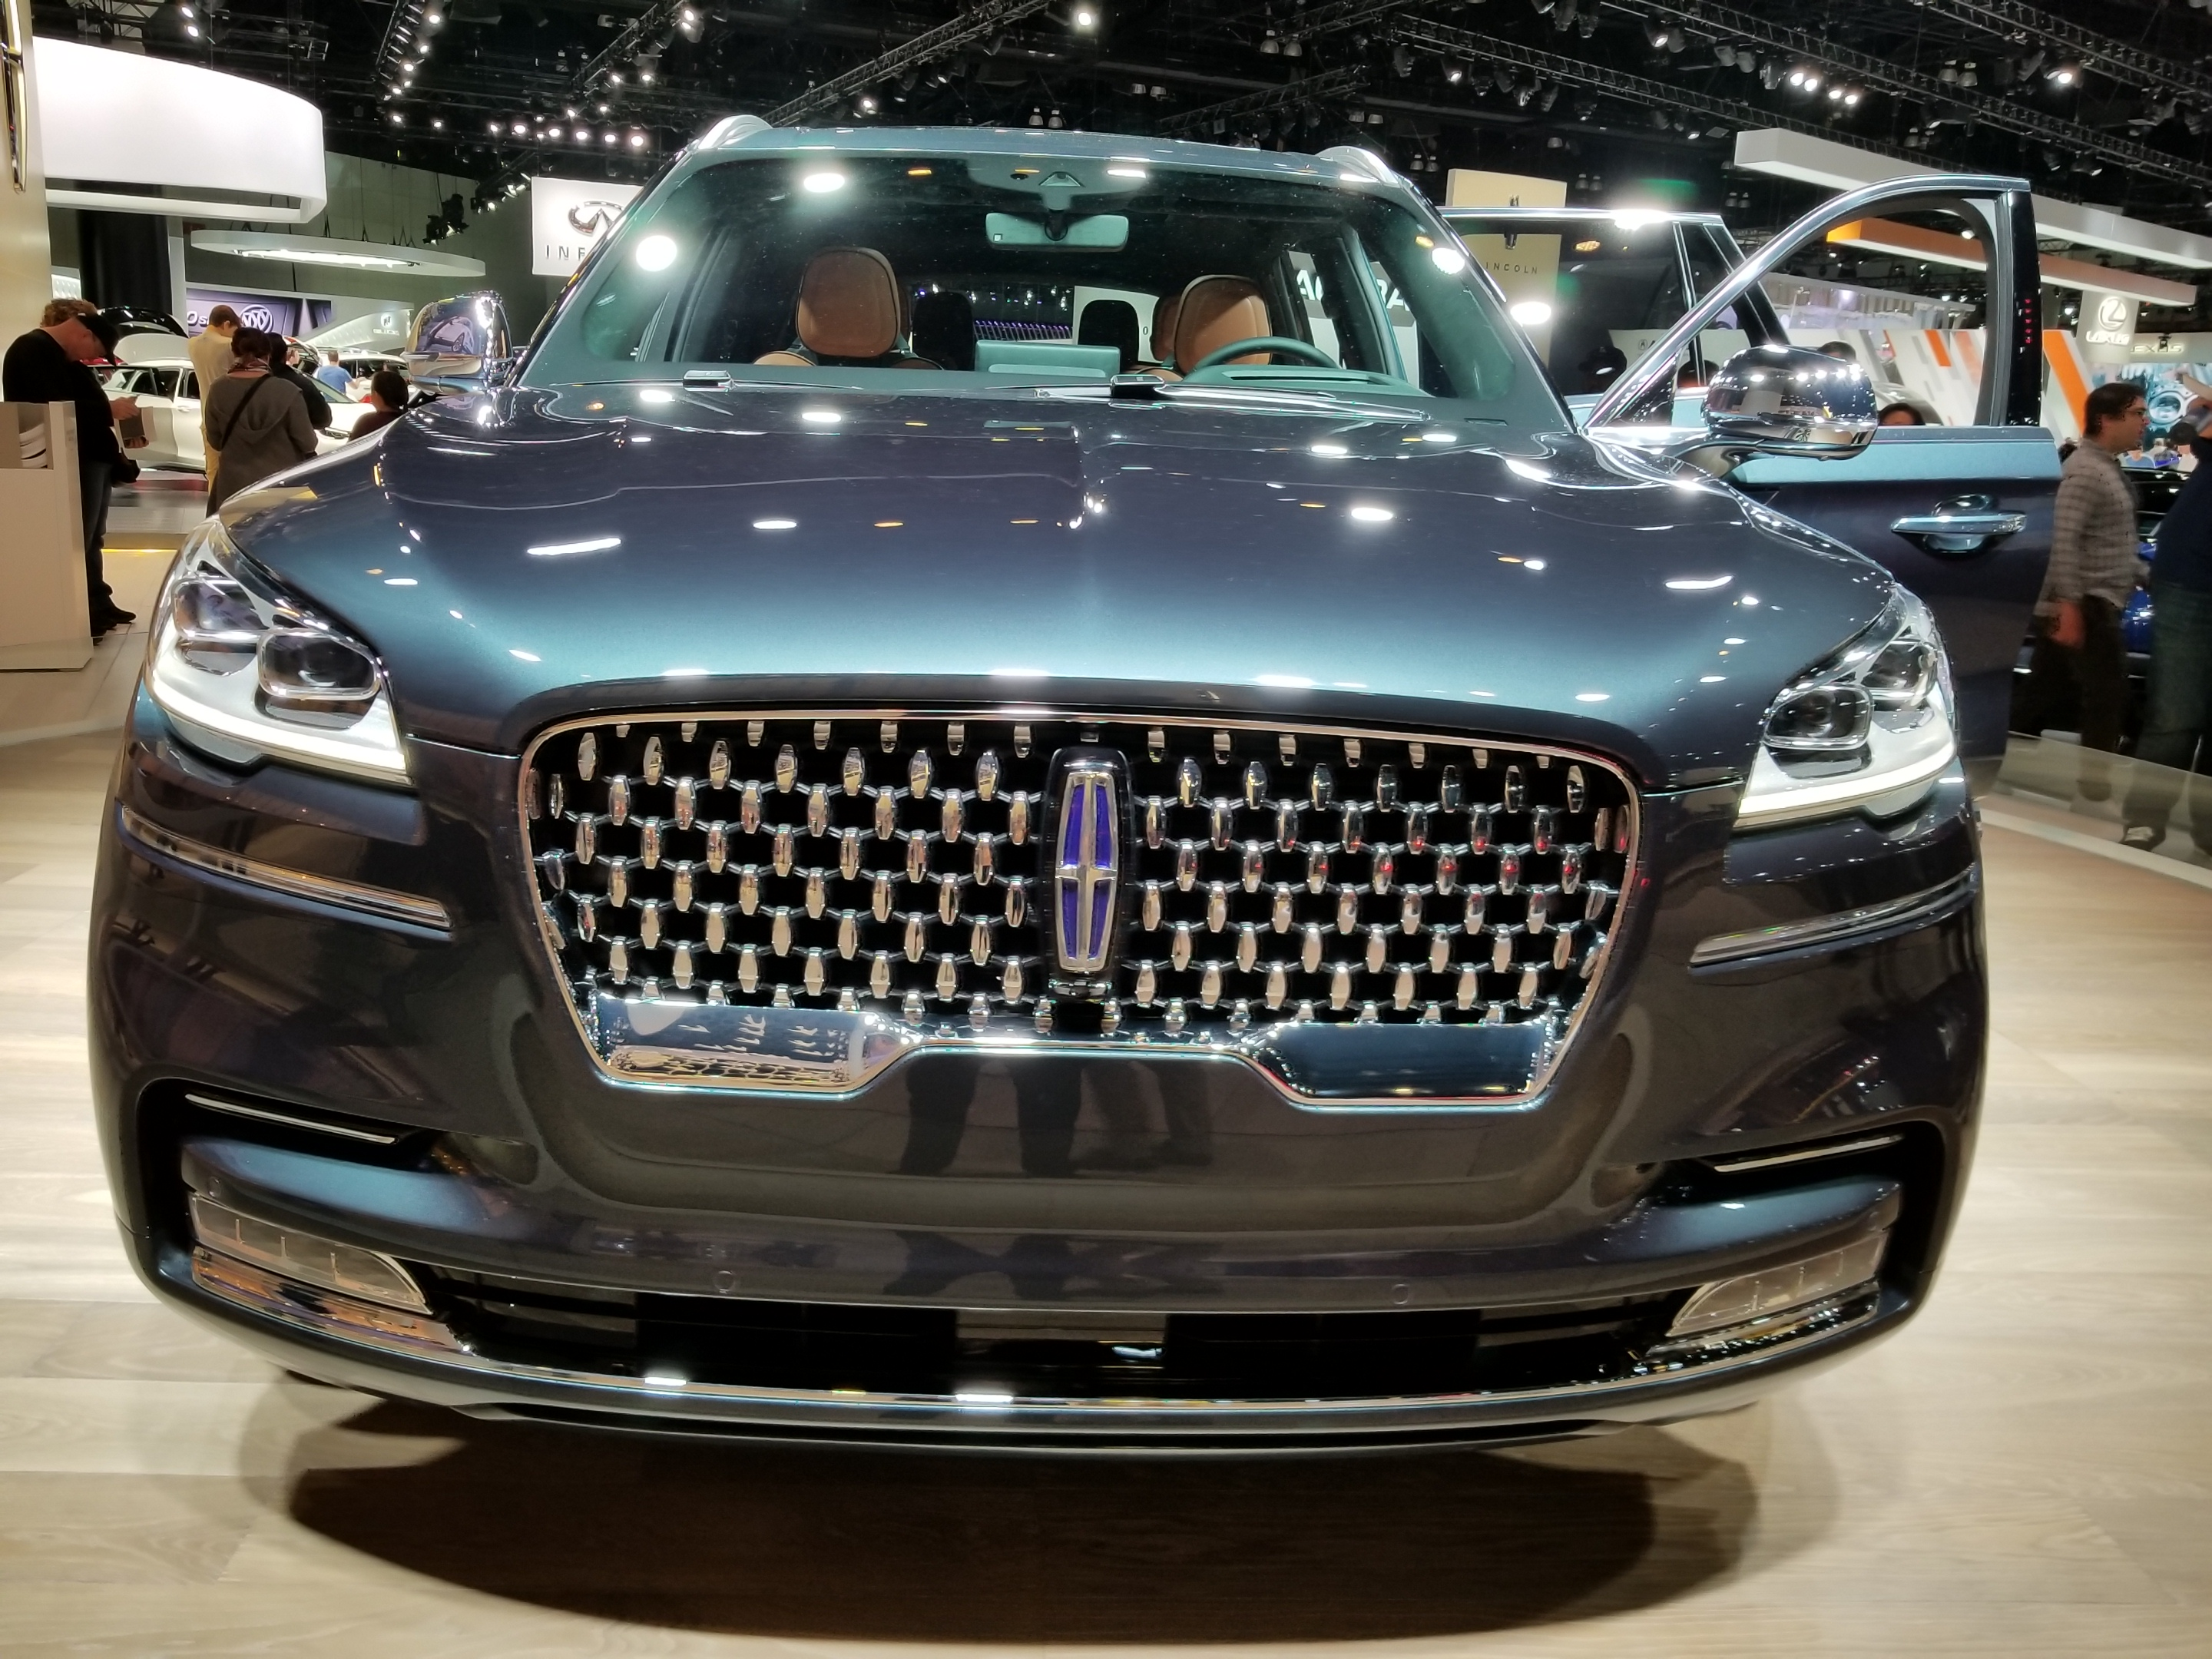 New 2020 Aviator Stars at Lincoln Brand Day at the L A  Auto